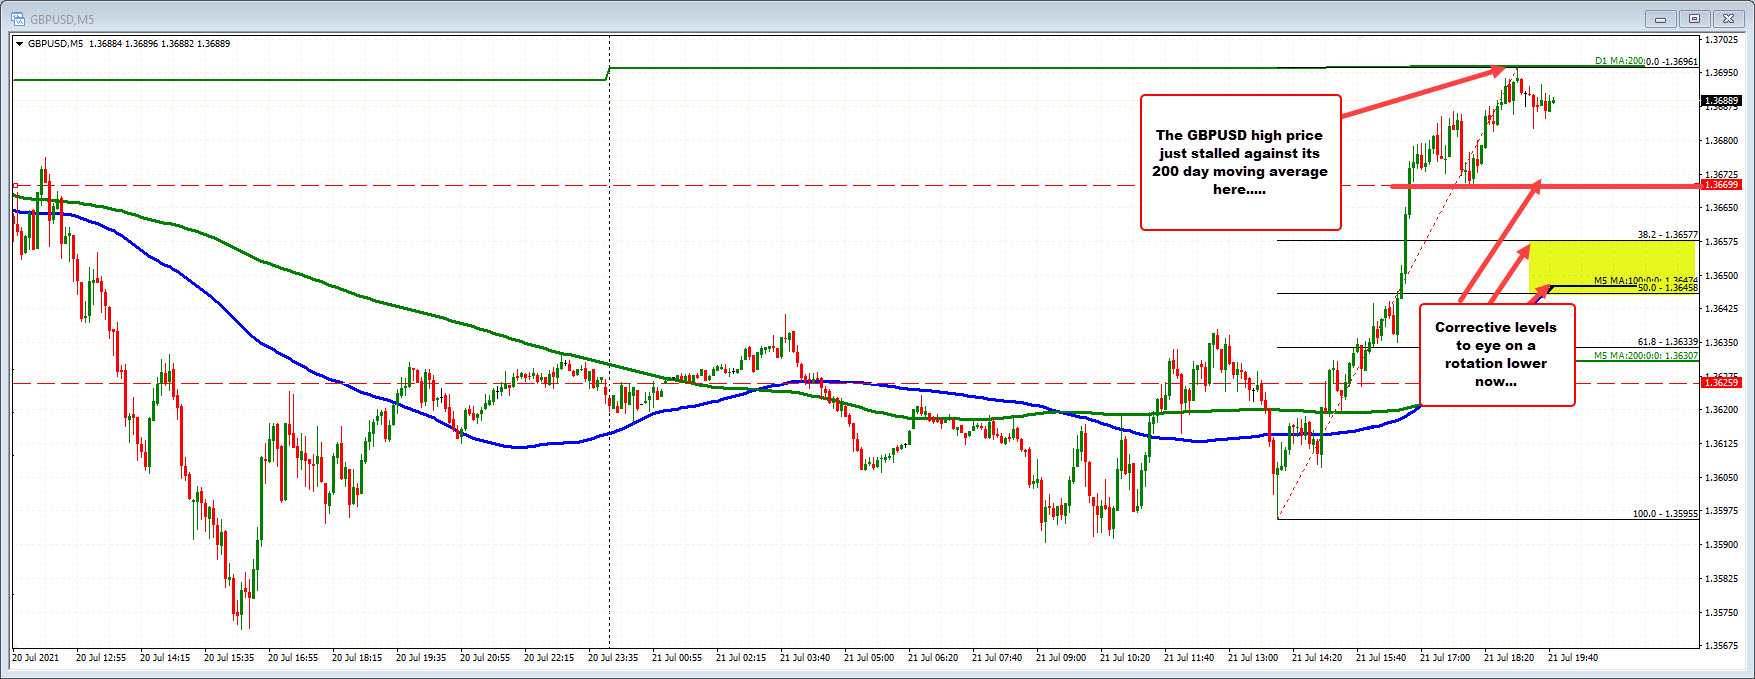 GBPUSD on the five minute chart